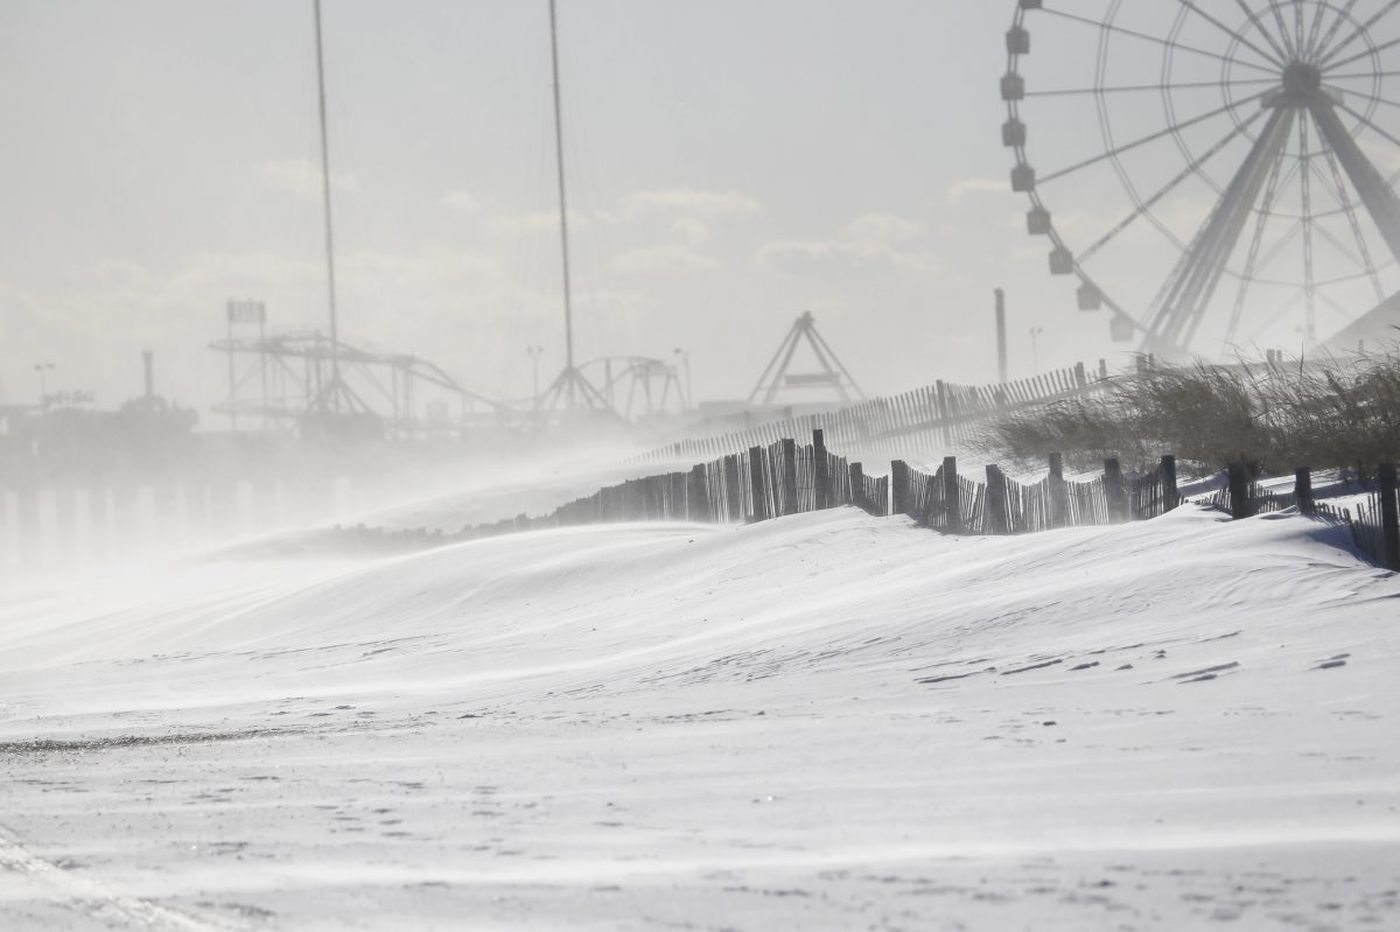 Jersey Shore digs out after winter storm, but frigid conditions remain